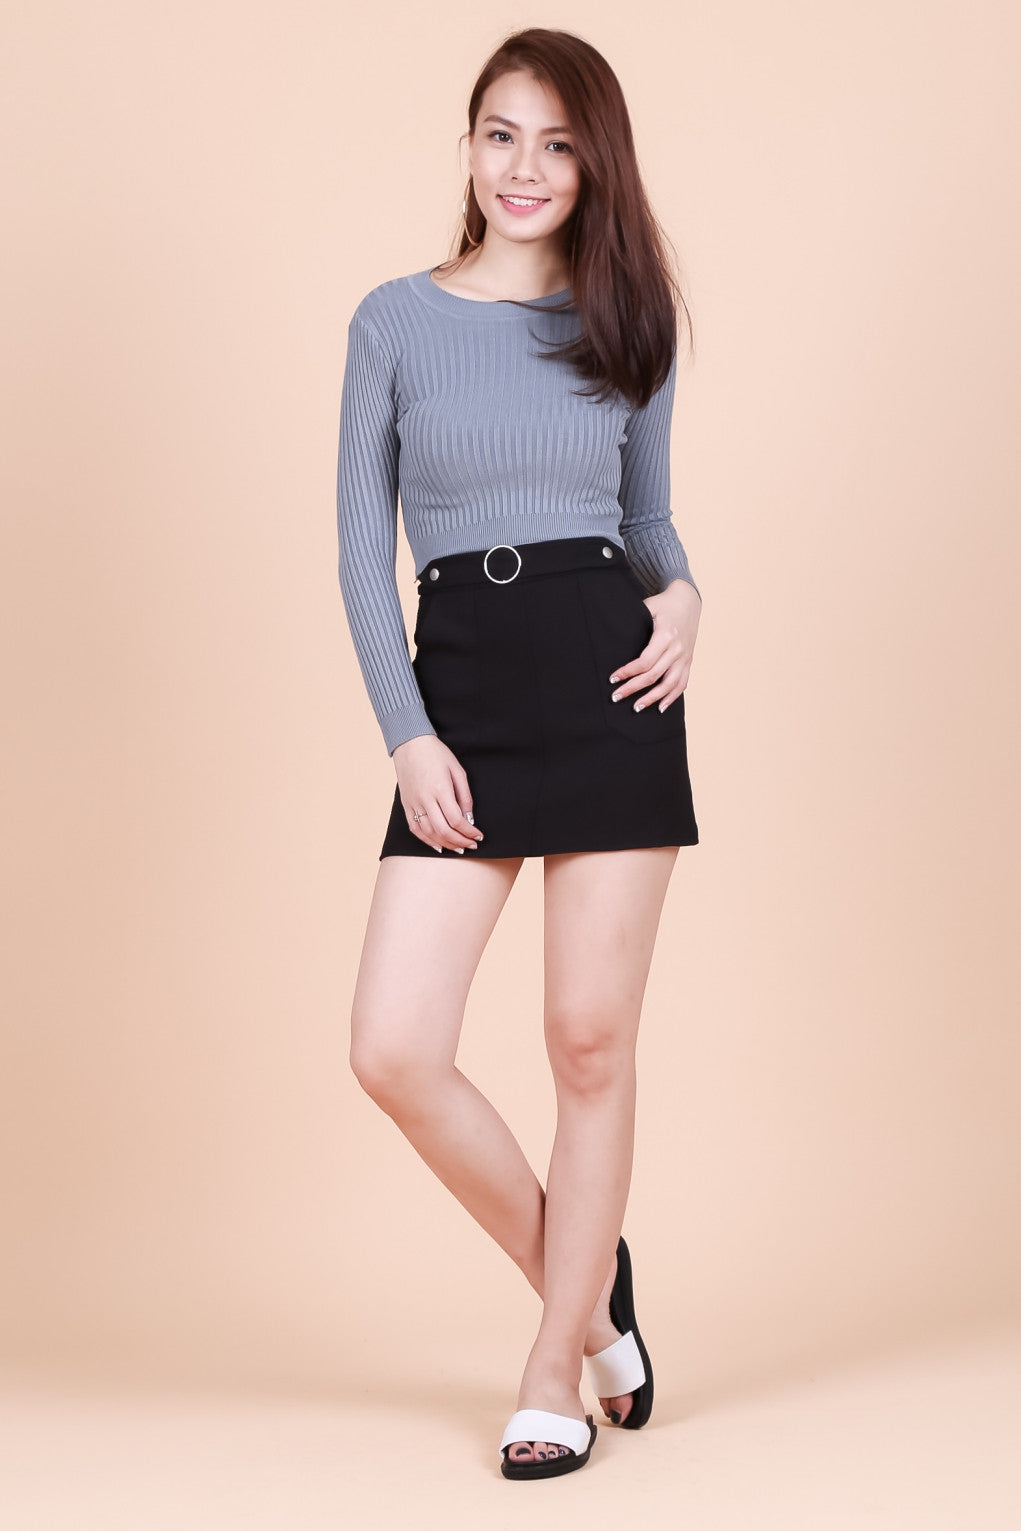 WILLOW SOFT KNIT TOP IN GREY